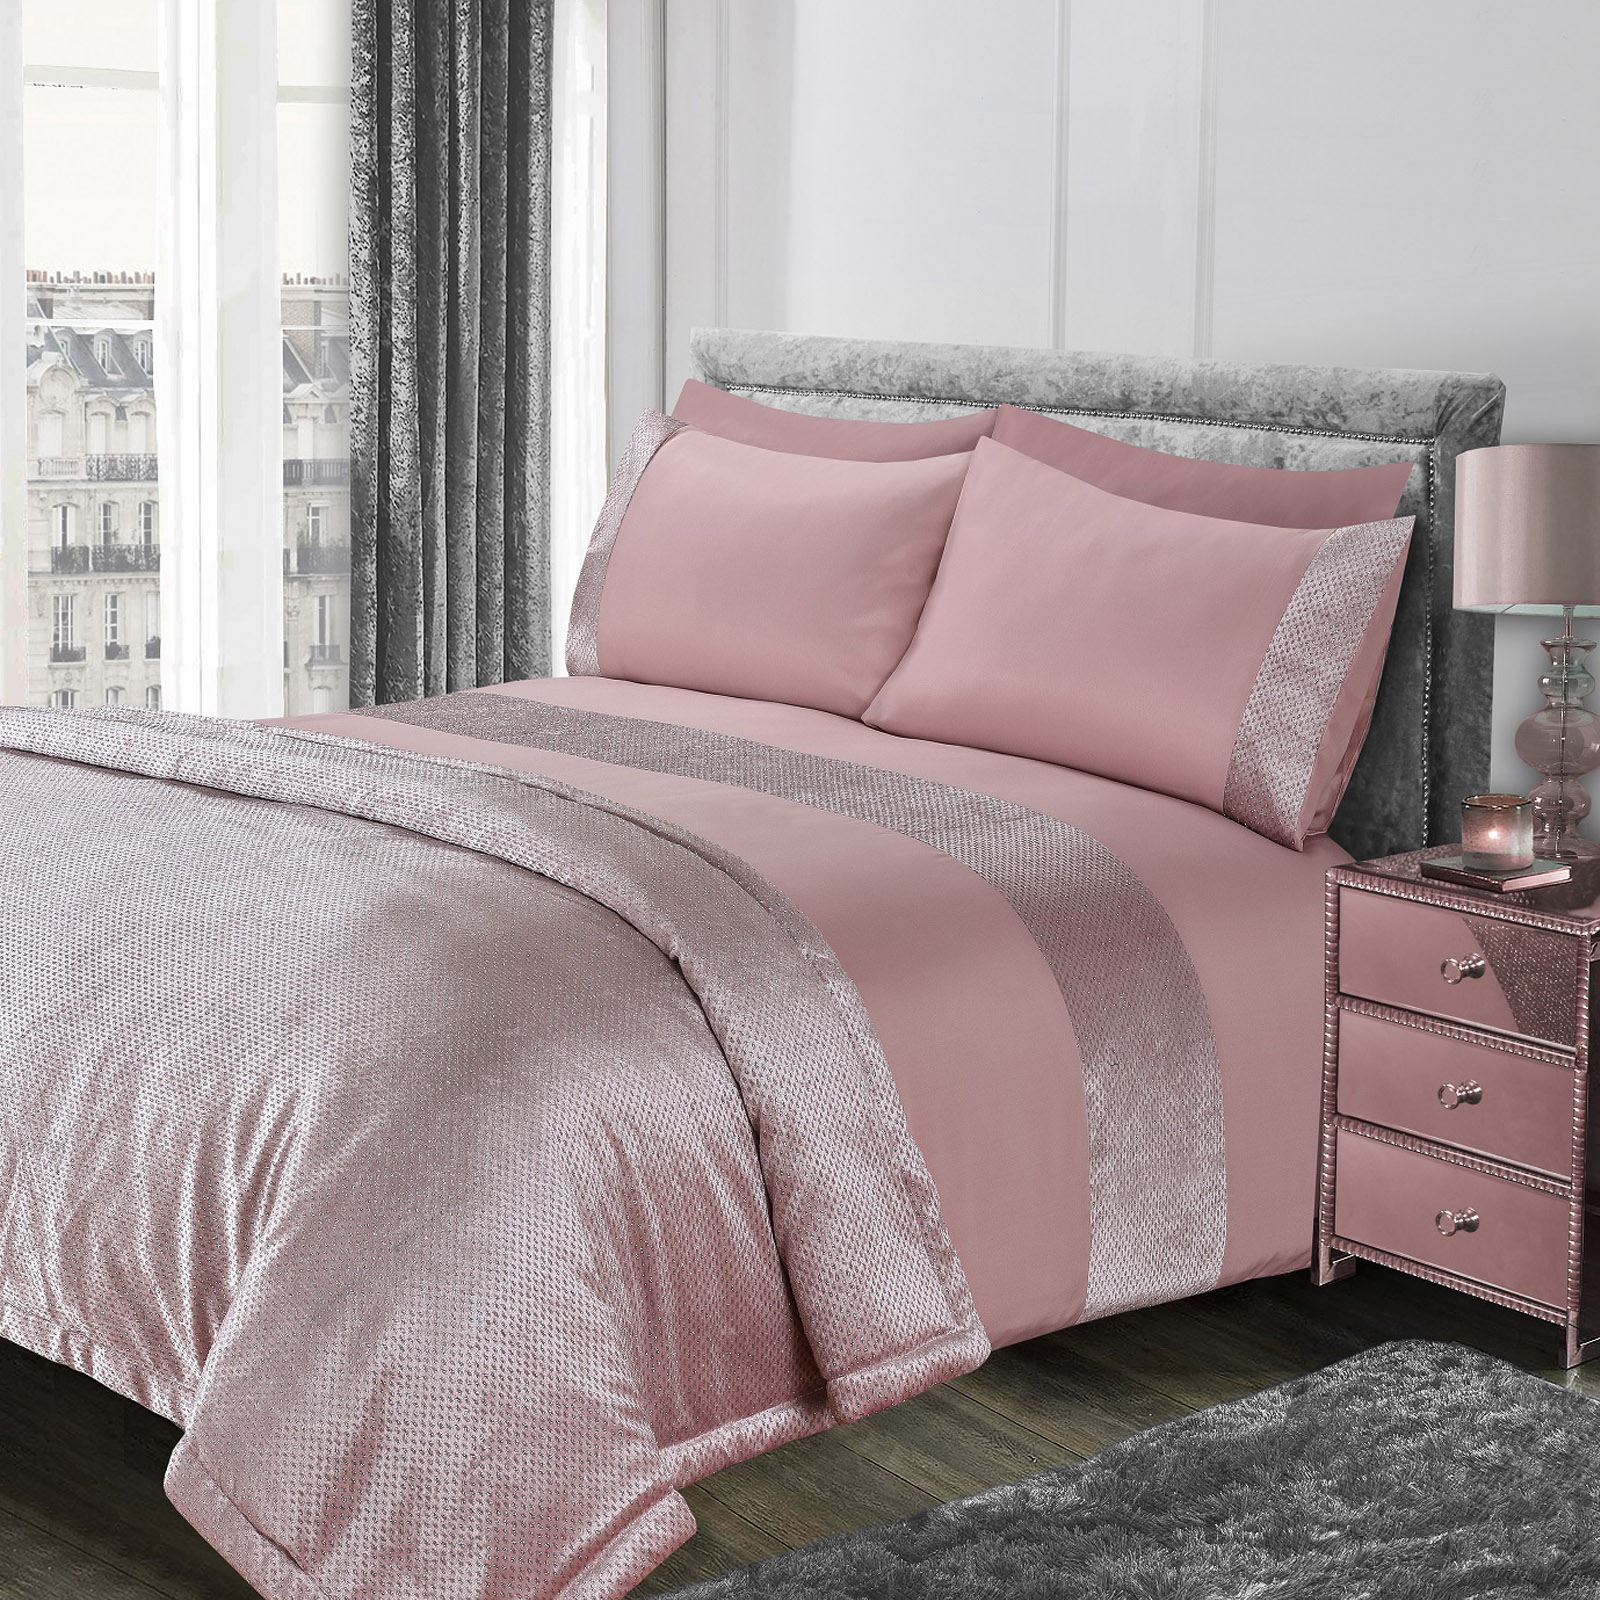 Sienna-Glitter-Duvet-Cover-with-Pillow-Case-Sparkle-Velvet-Bedding-Set-Grey-Pink thumbnail 6